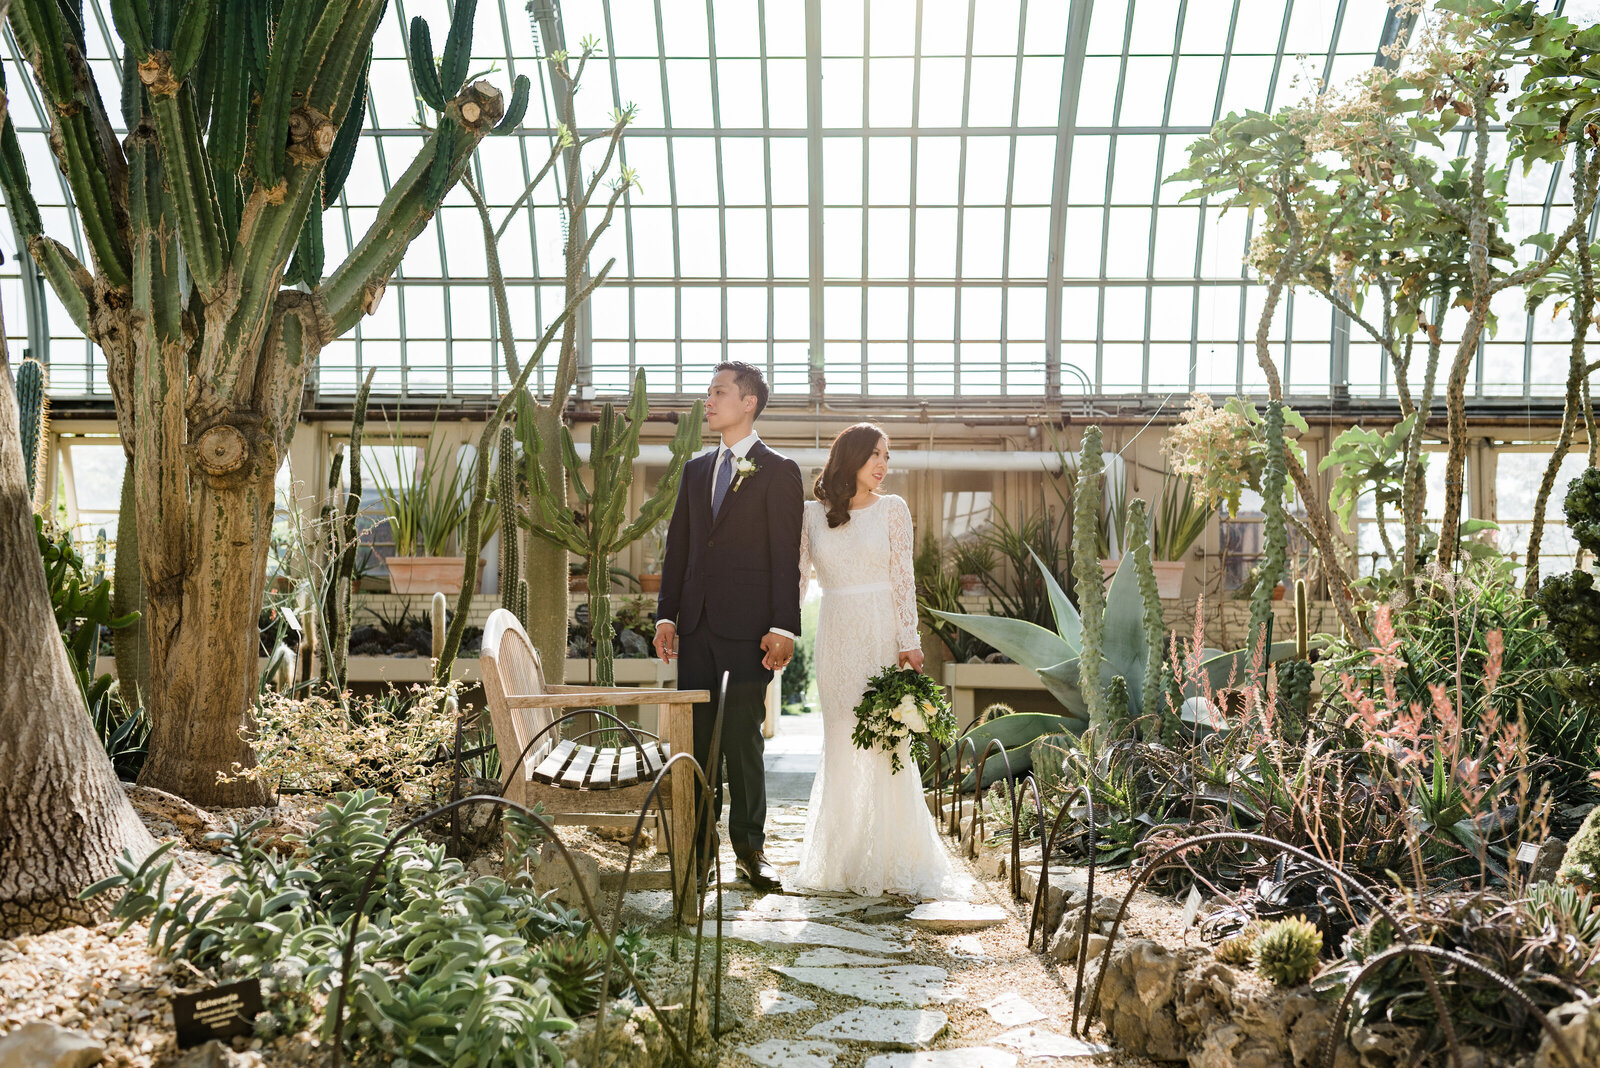 Garfield Park Conservatory Wedding _ Susie and Joe_104